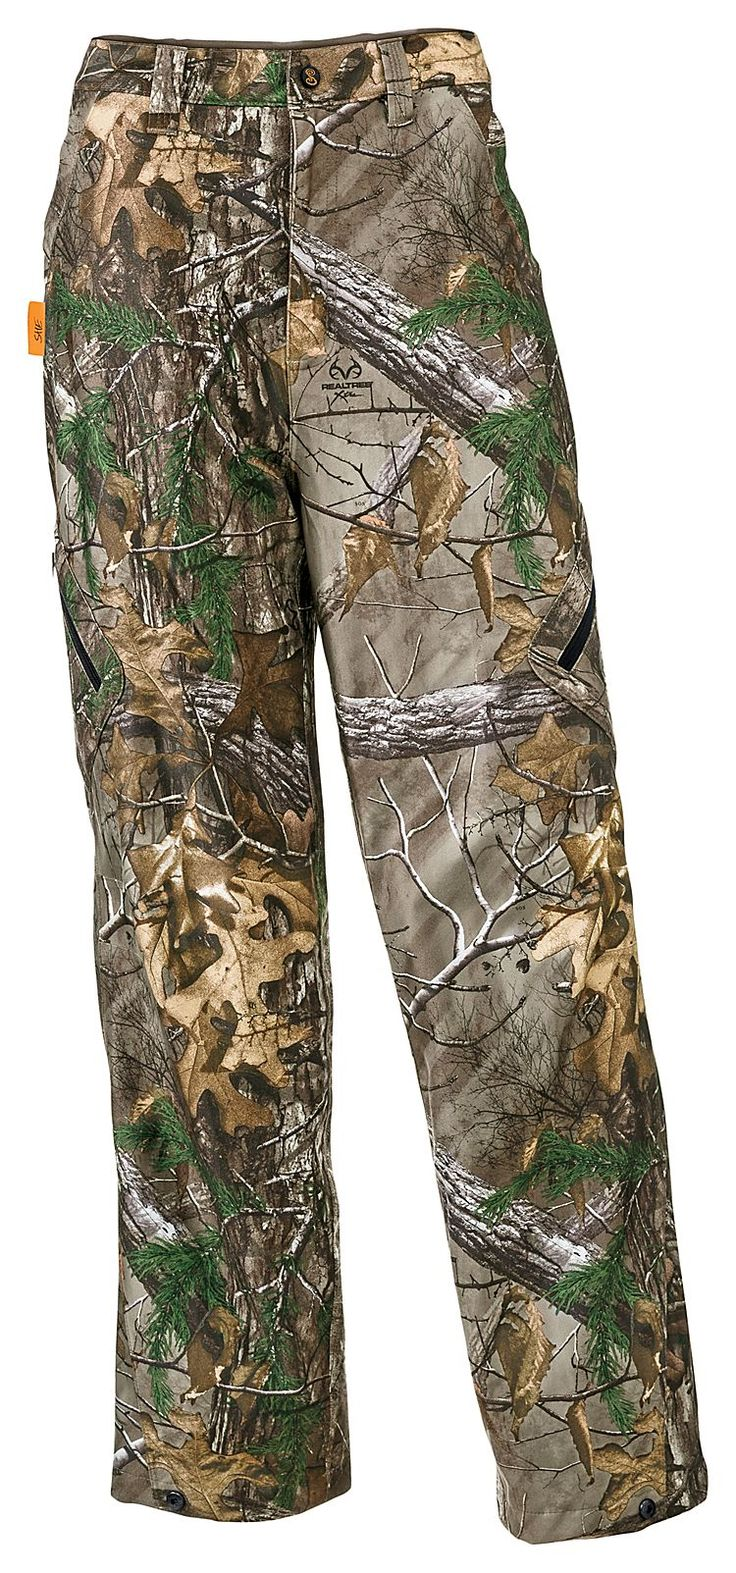 3139 best camo stuff images on pinterest hunting stuff for Bass fishing rain gear